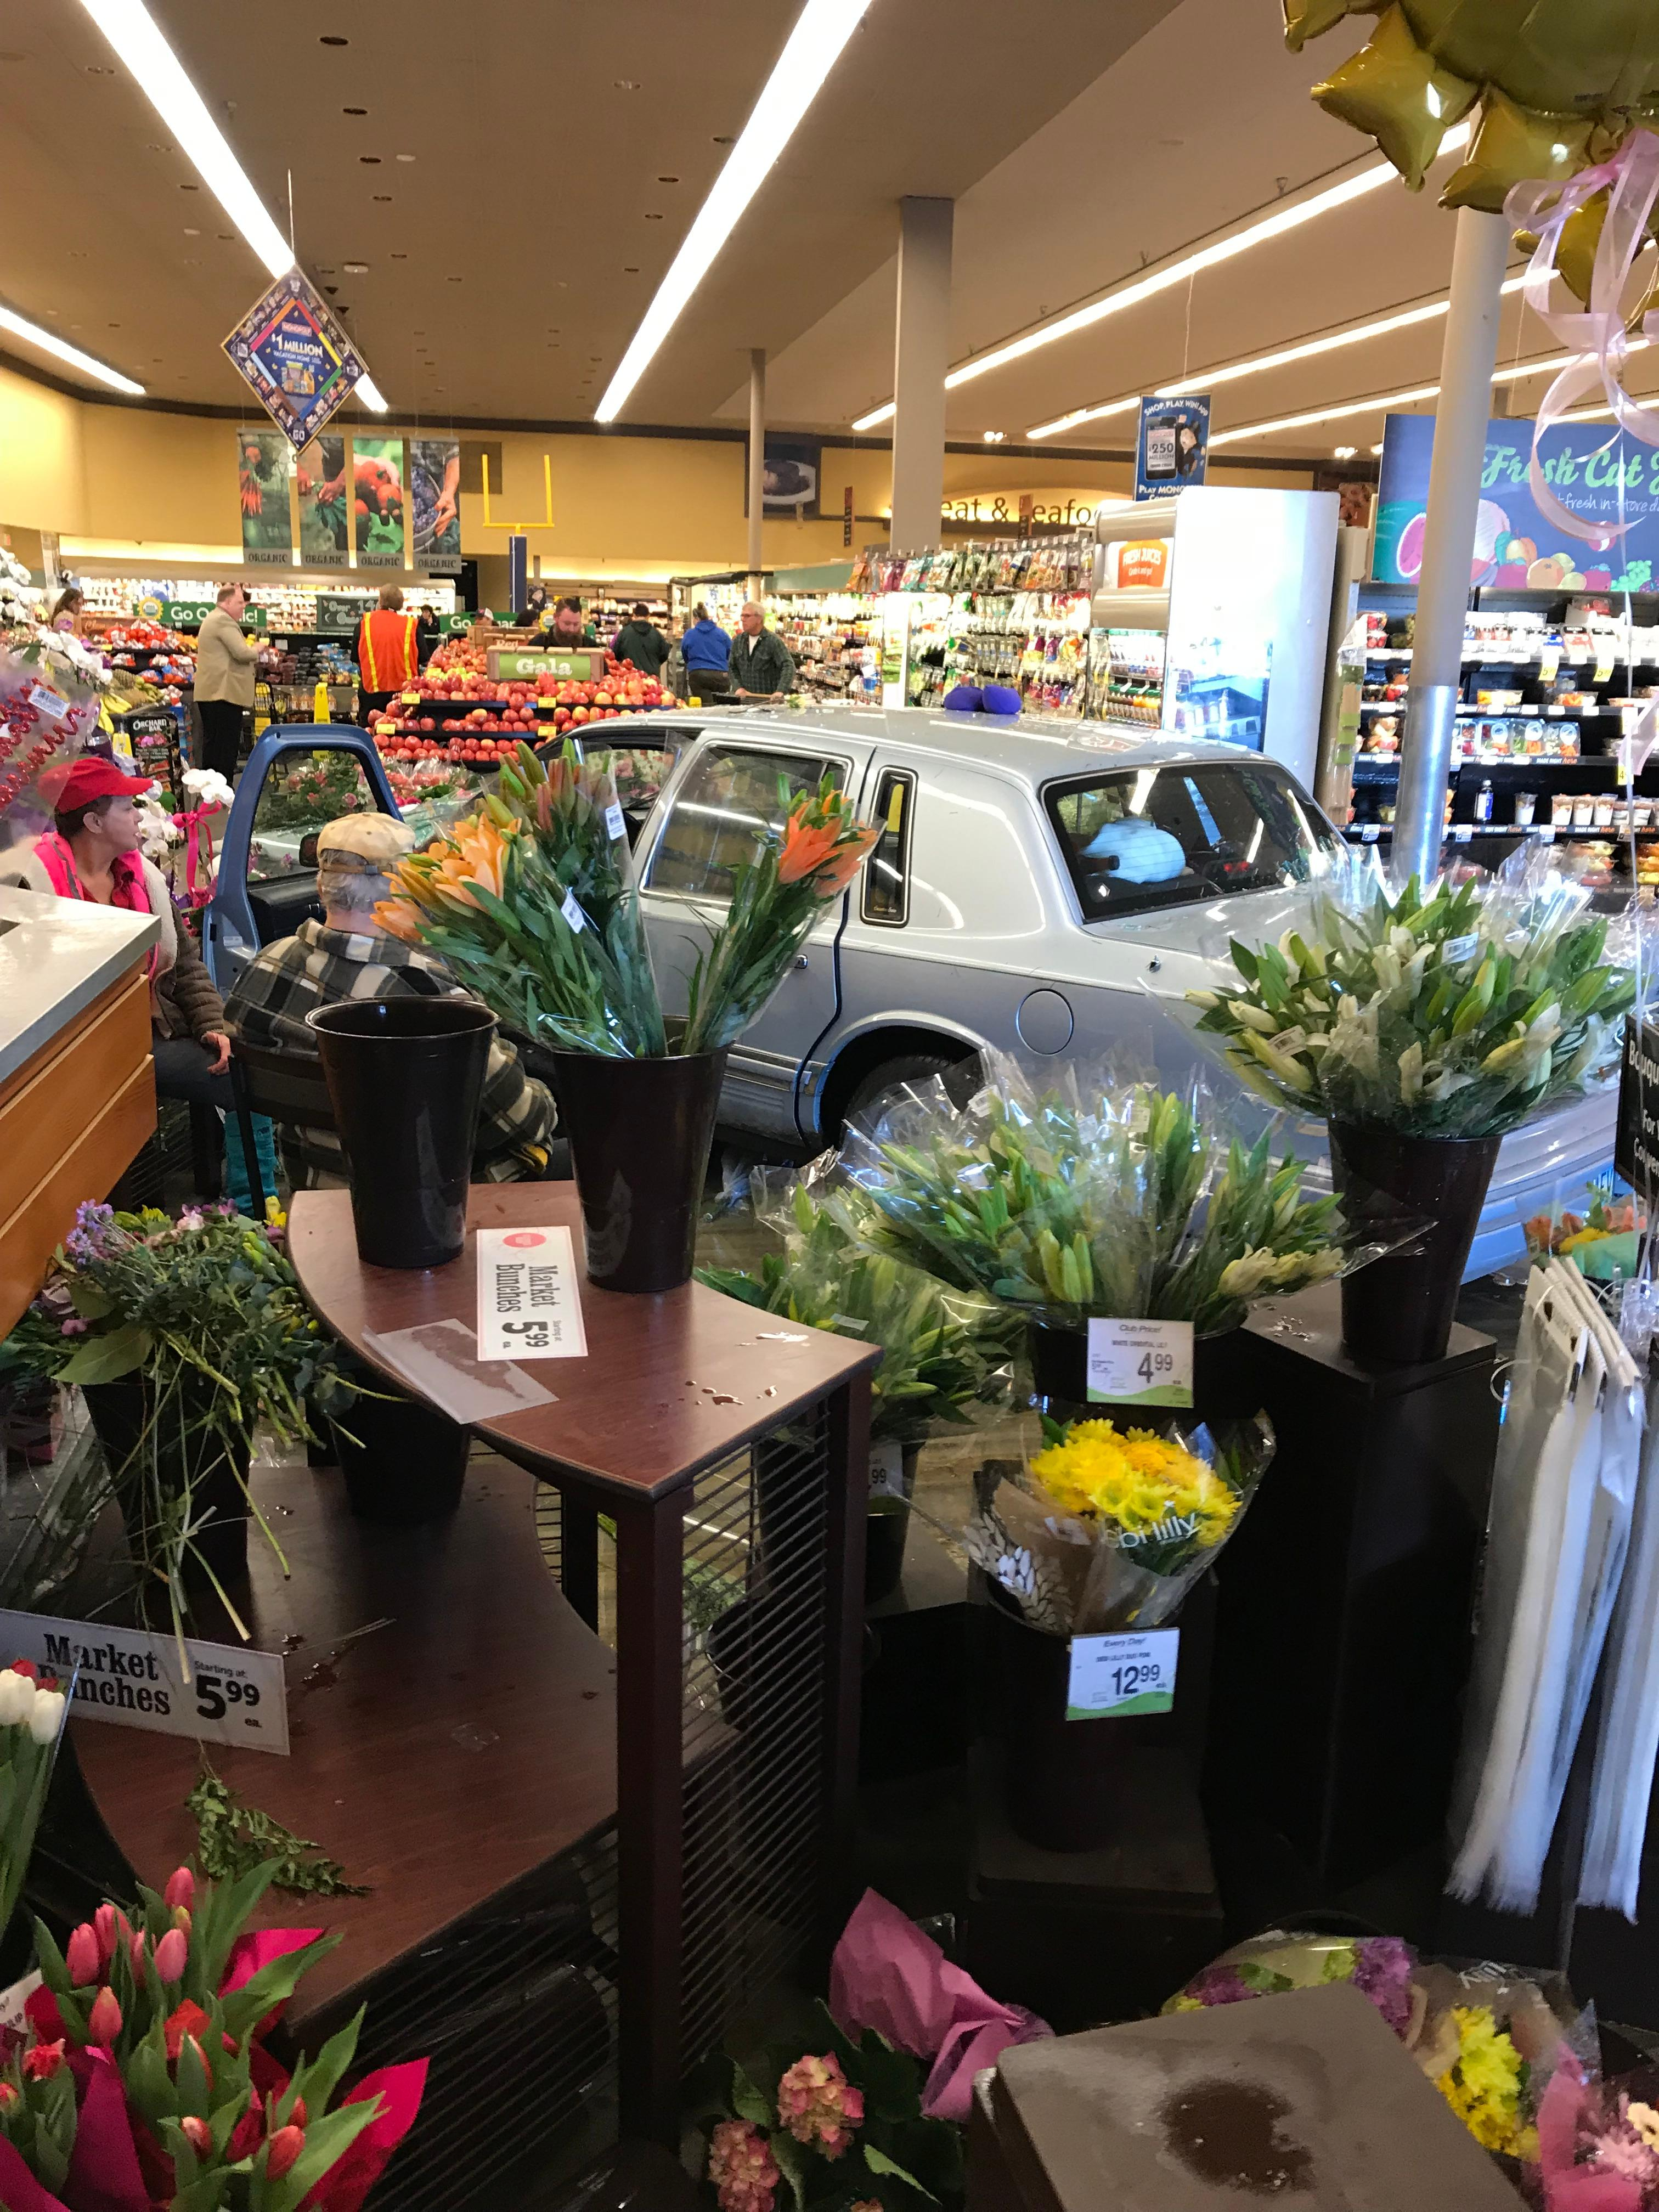 Nobody was seriously injured following an accident that took place at a Safeway in Junction City, when a 88-year-old man drove through the front entrance. (Photo Courtesy of Oregon State Police).<p></p>